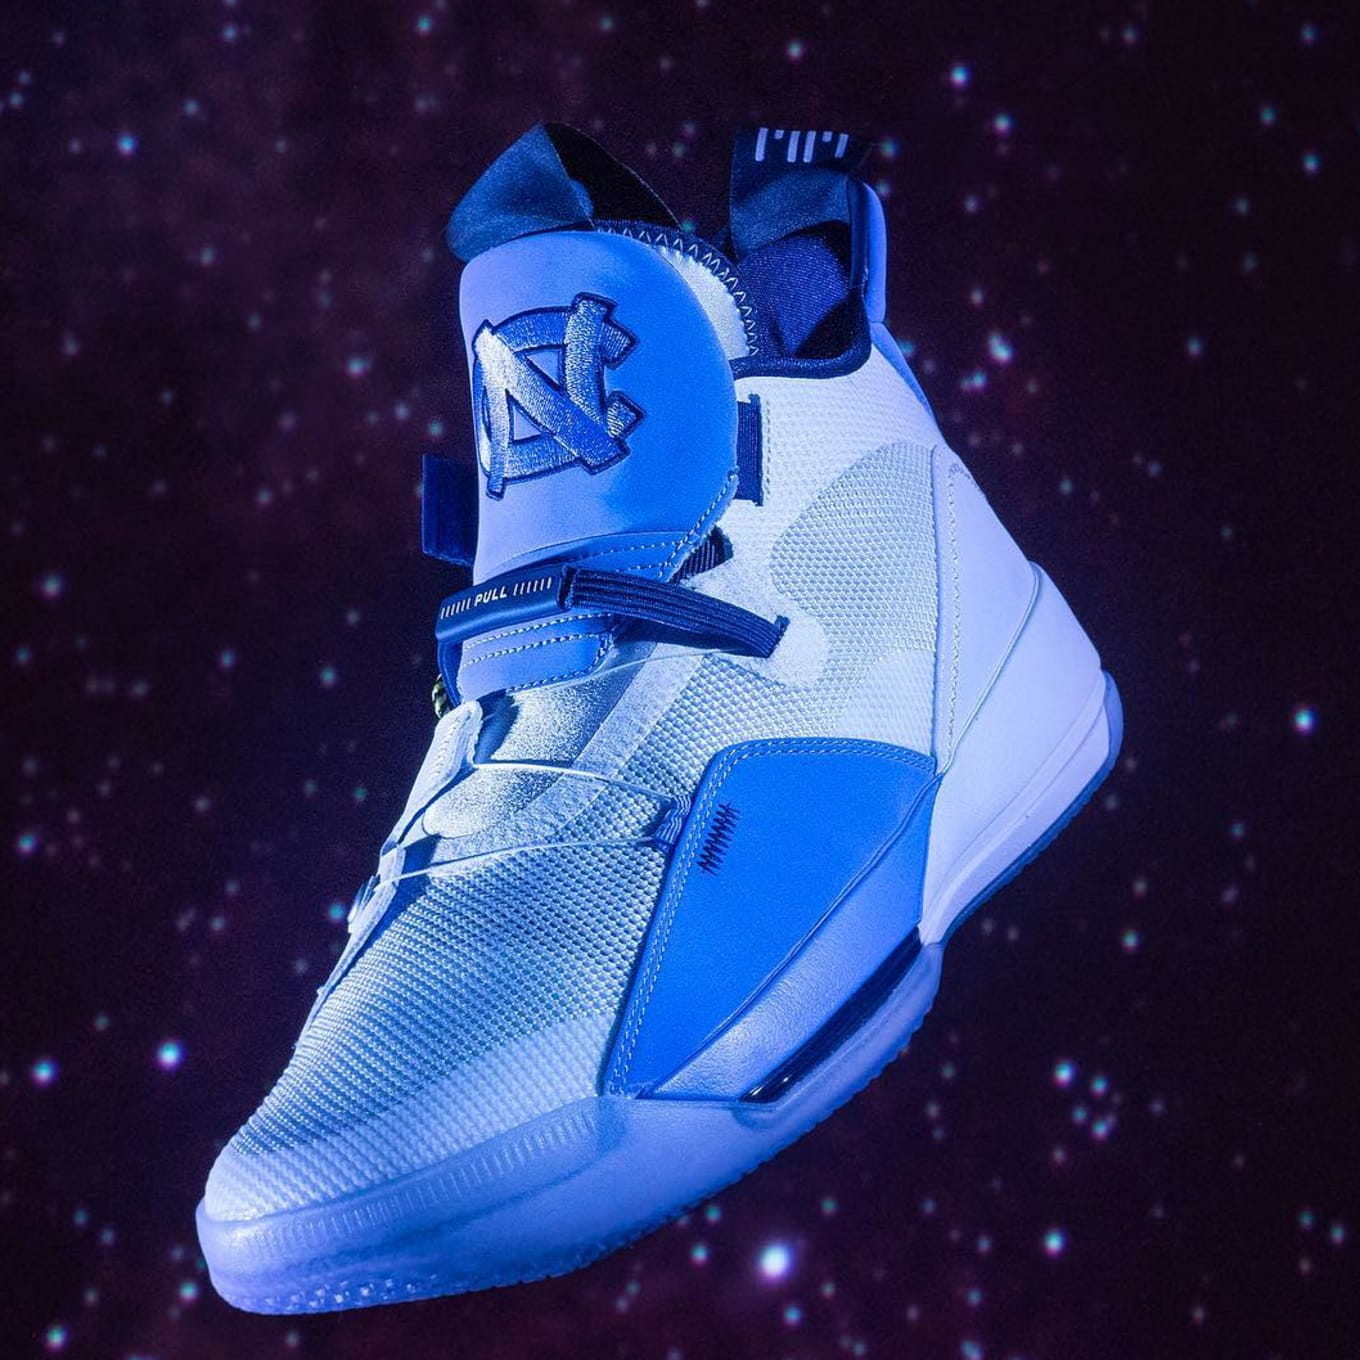 0b2c37ec221 ... aliexpress air jordan 33 pes for unc tar heels. preseason player  exclusives. 88762 25df2